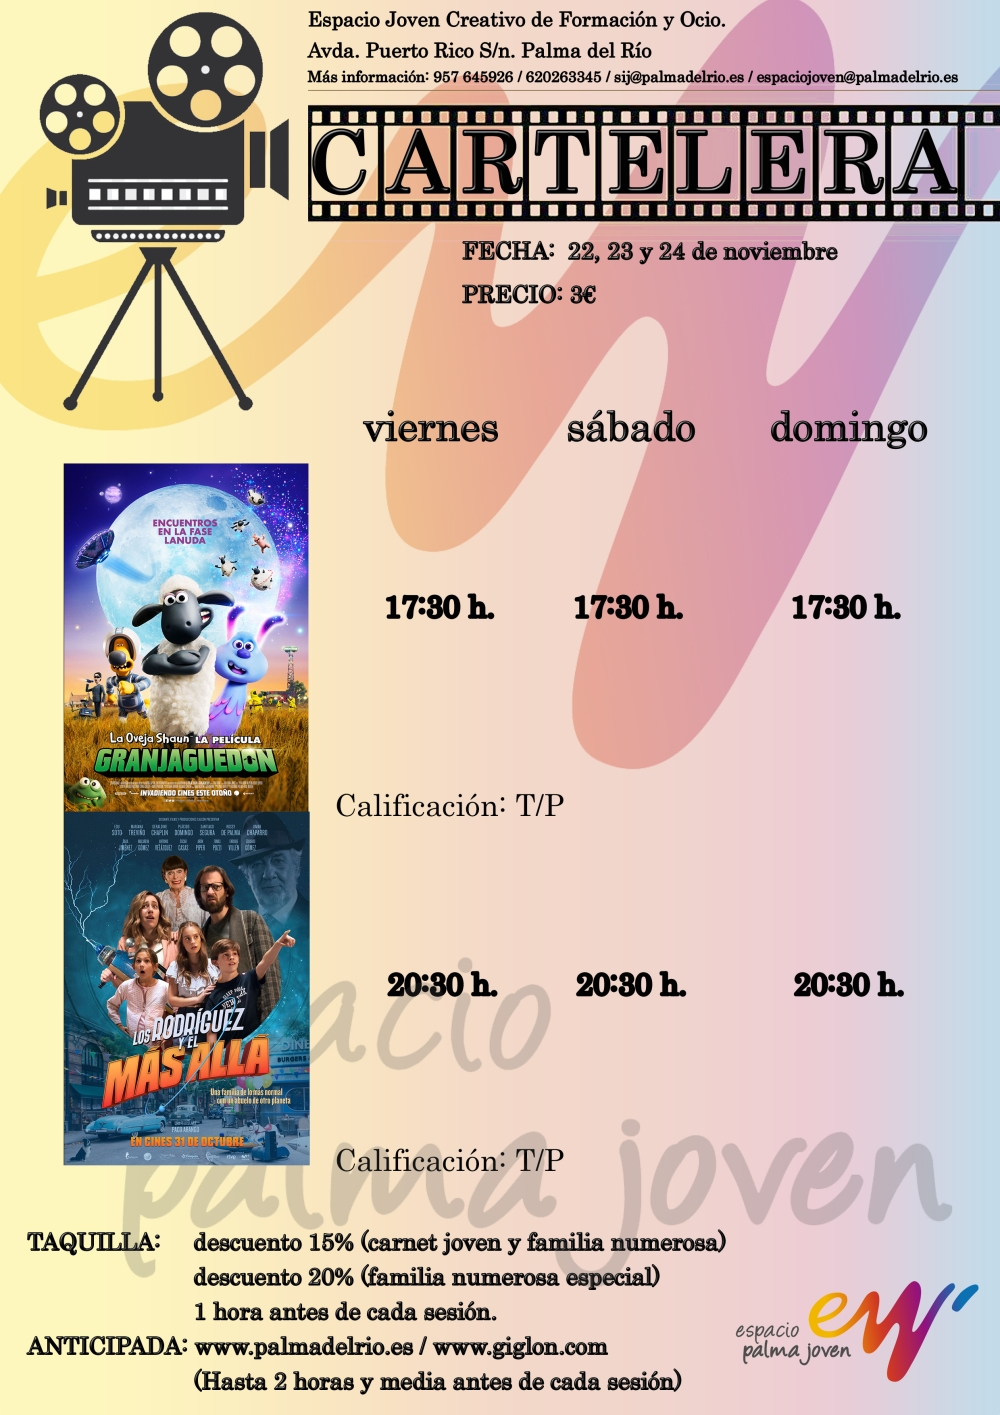 https://www.palmadelrio.es/sites/default/files/horario_cine_22_23_y_24_nov.jpg